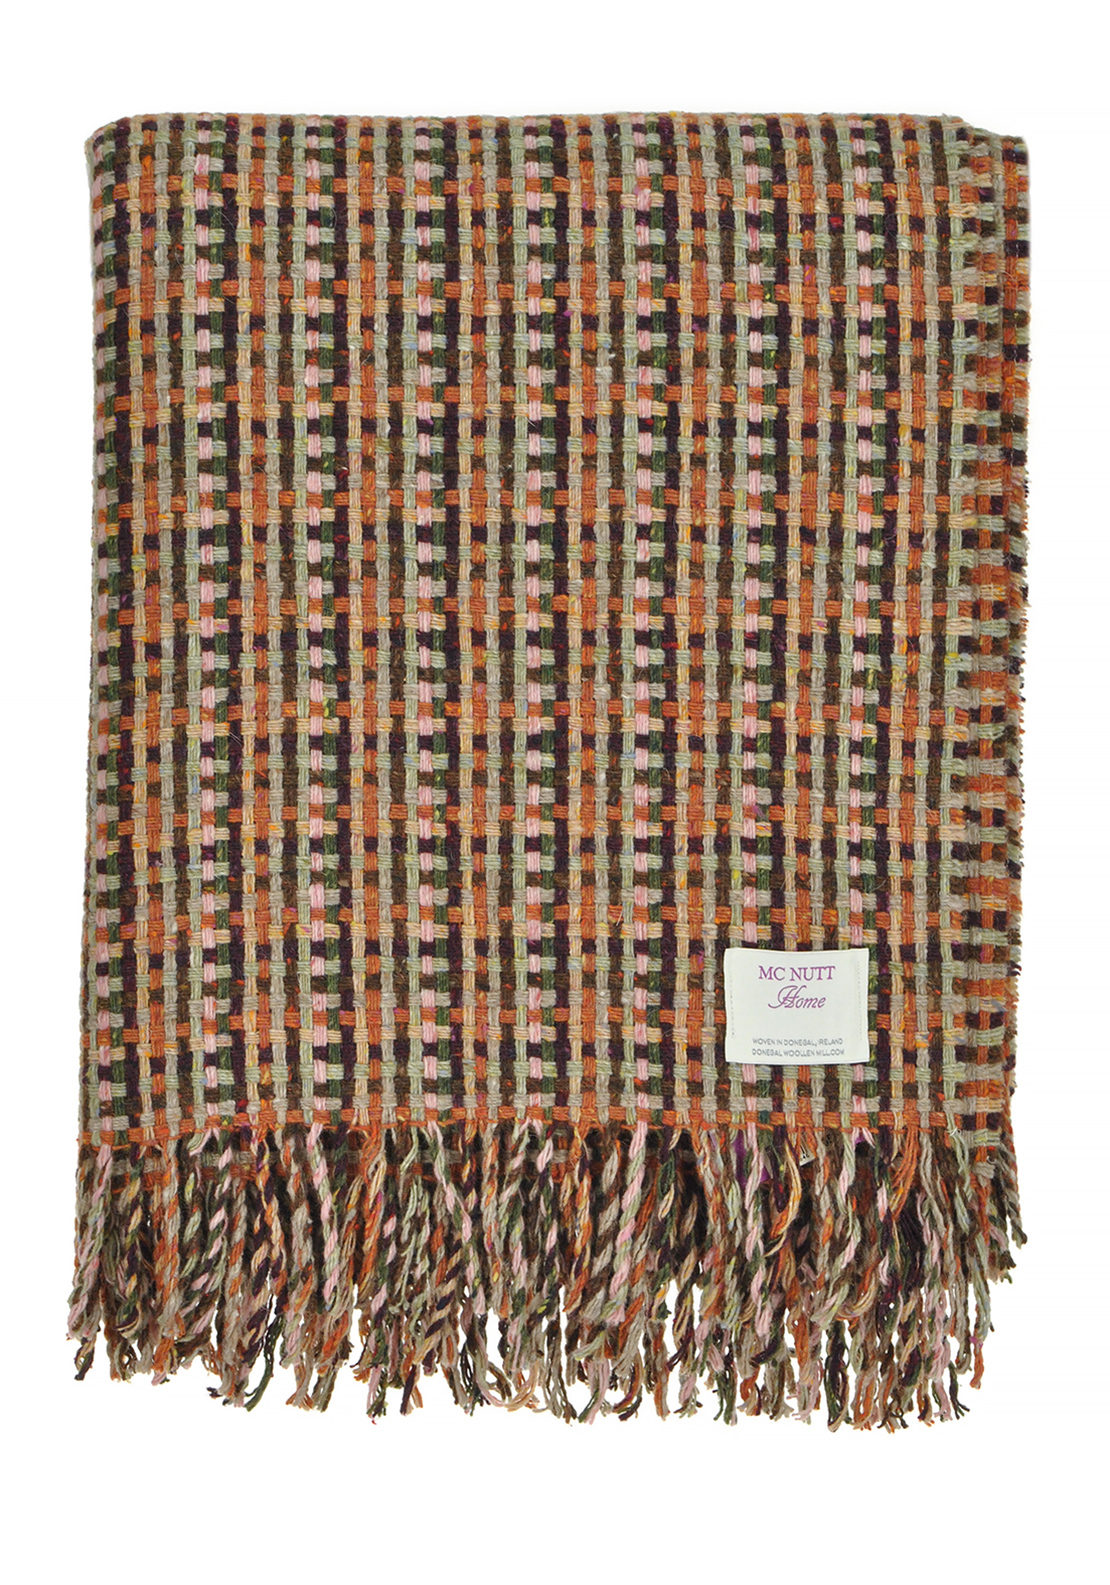 Mc Nutts Donegal Woollen Mill Autumn Throw Blanket, Brown